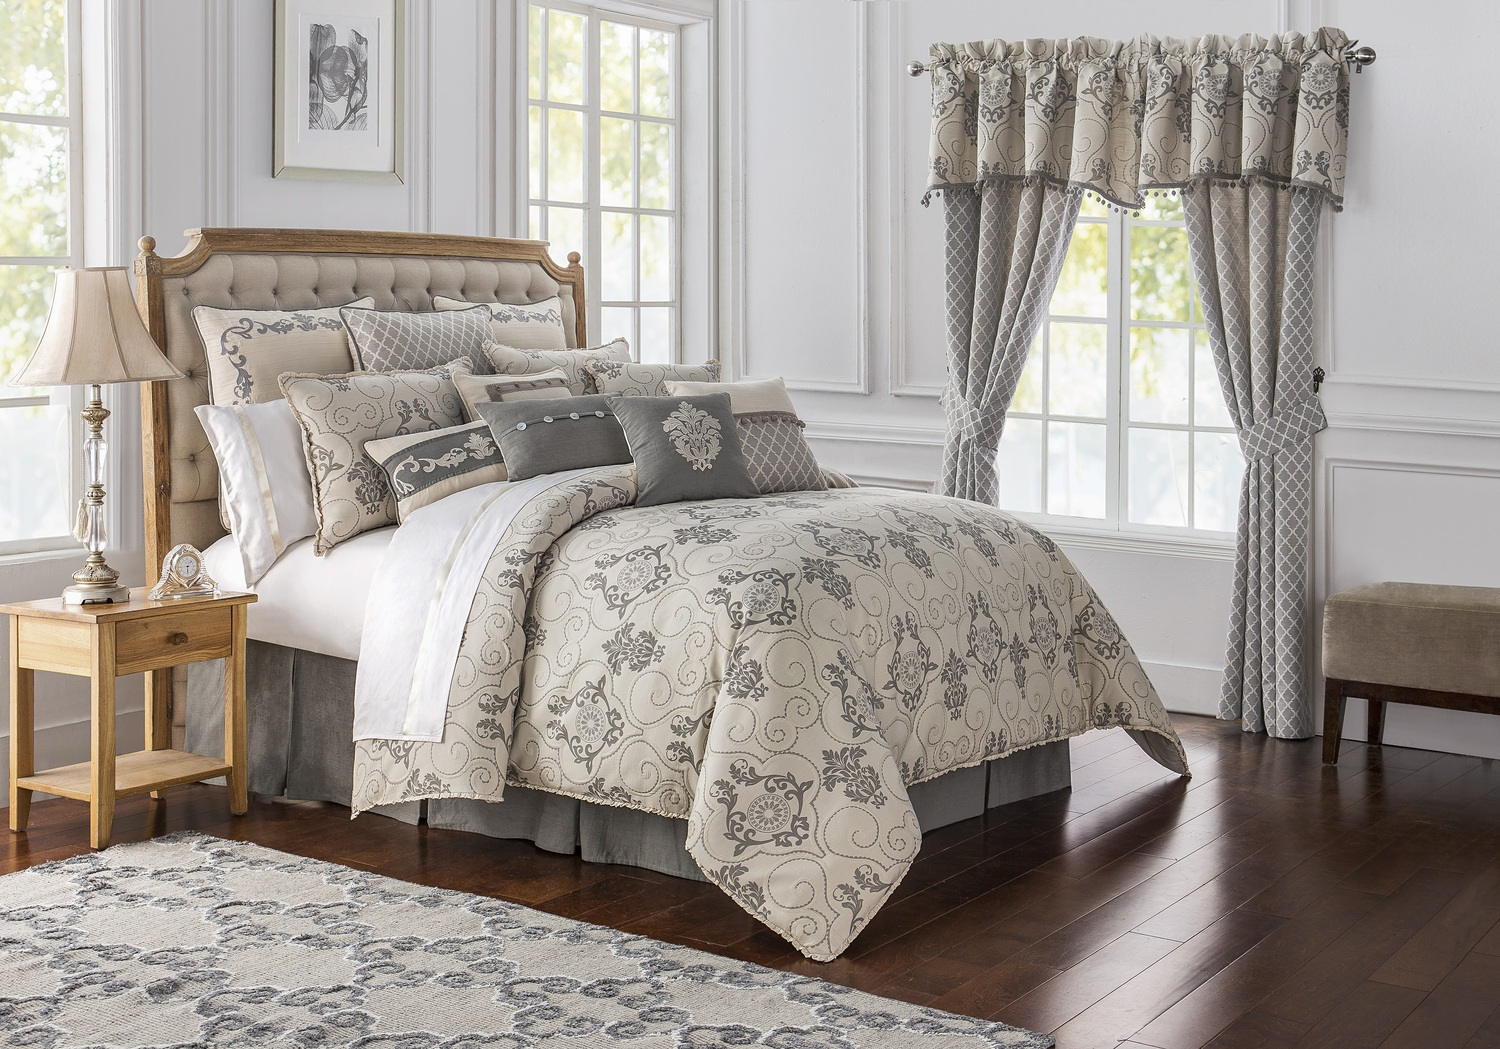 Maura Natural Waterford Luxury Bedding Beddingsuperstore Com